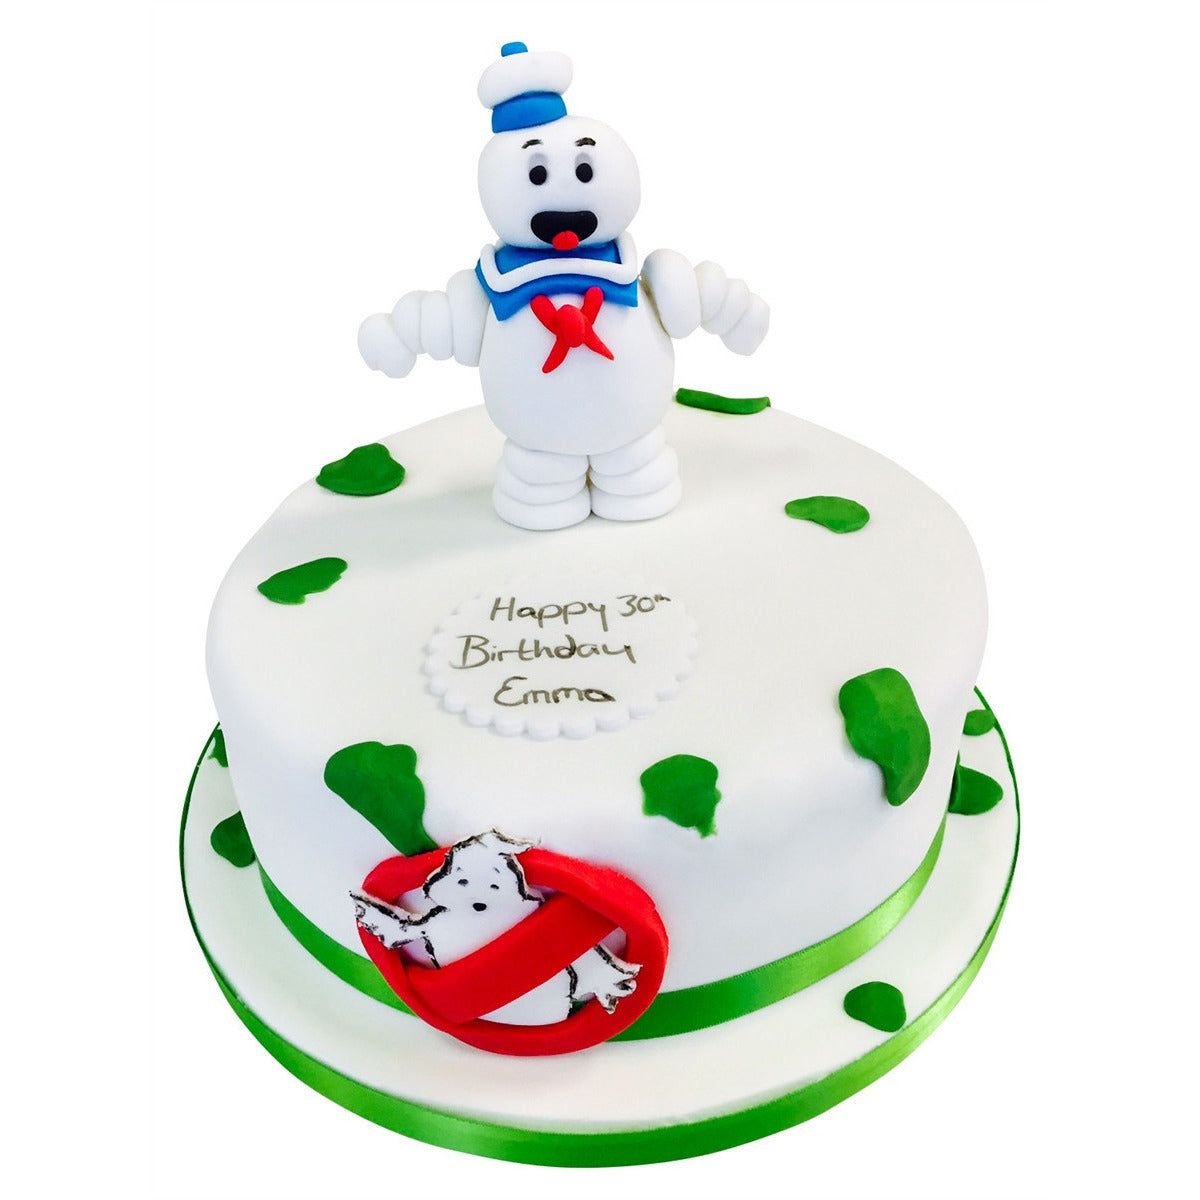 Strange Ghostbusters Cake Buy Online Free Uk Delivery New Cakes Funny Birthday Cards Online Alyptdamsfinfo